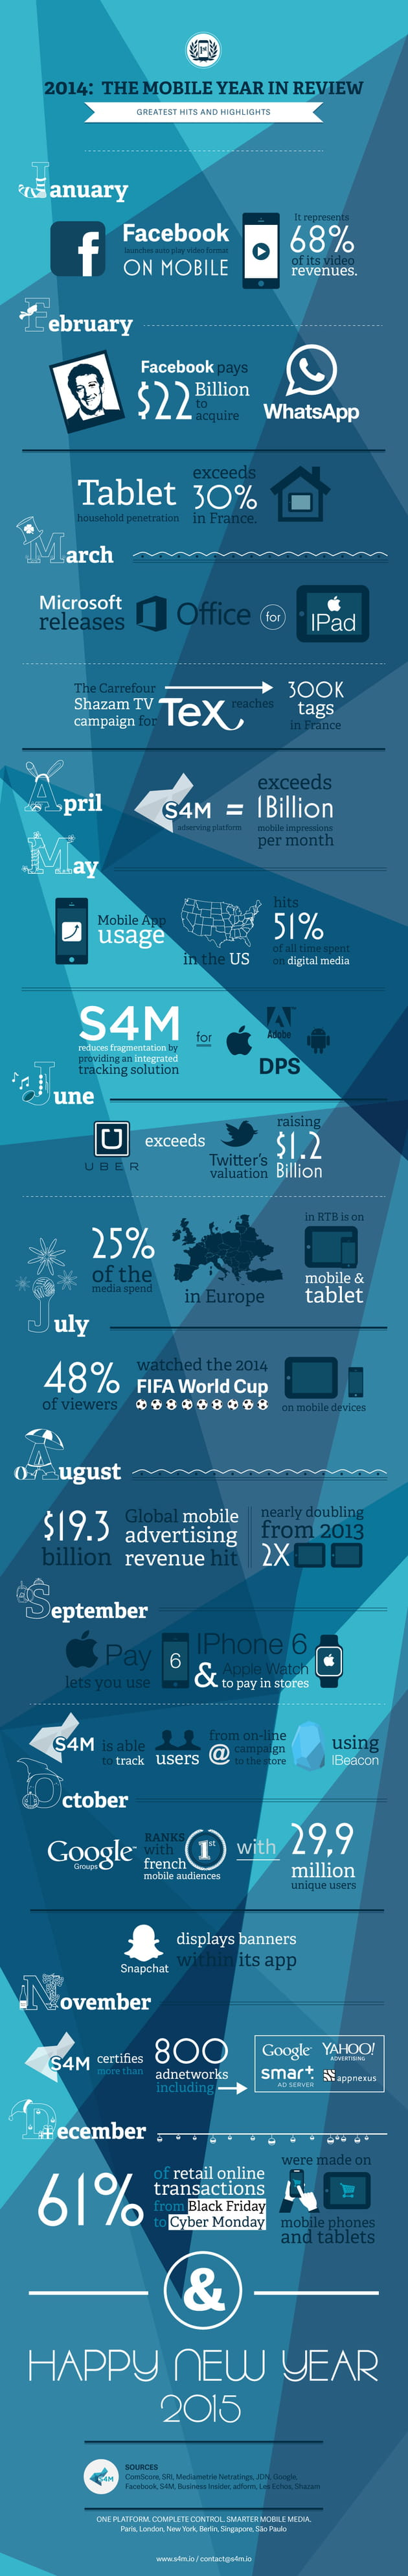 infographie s4m